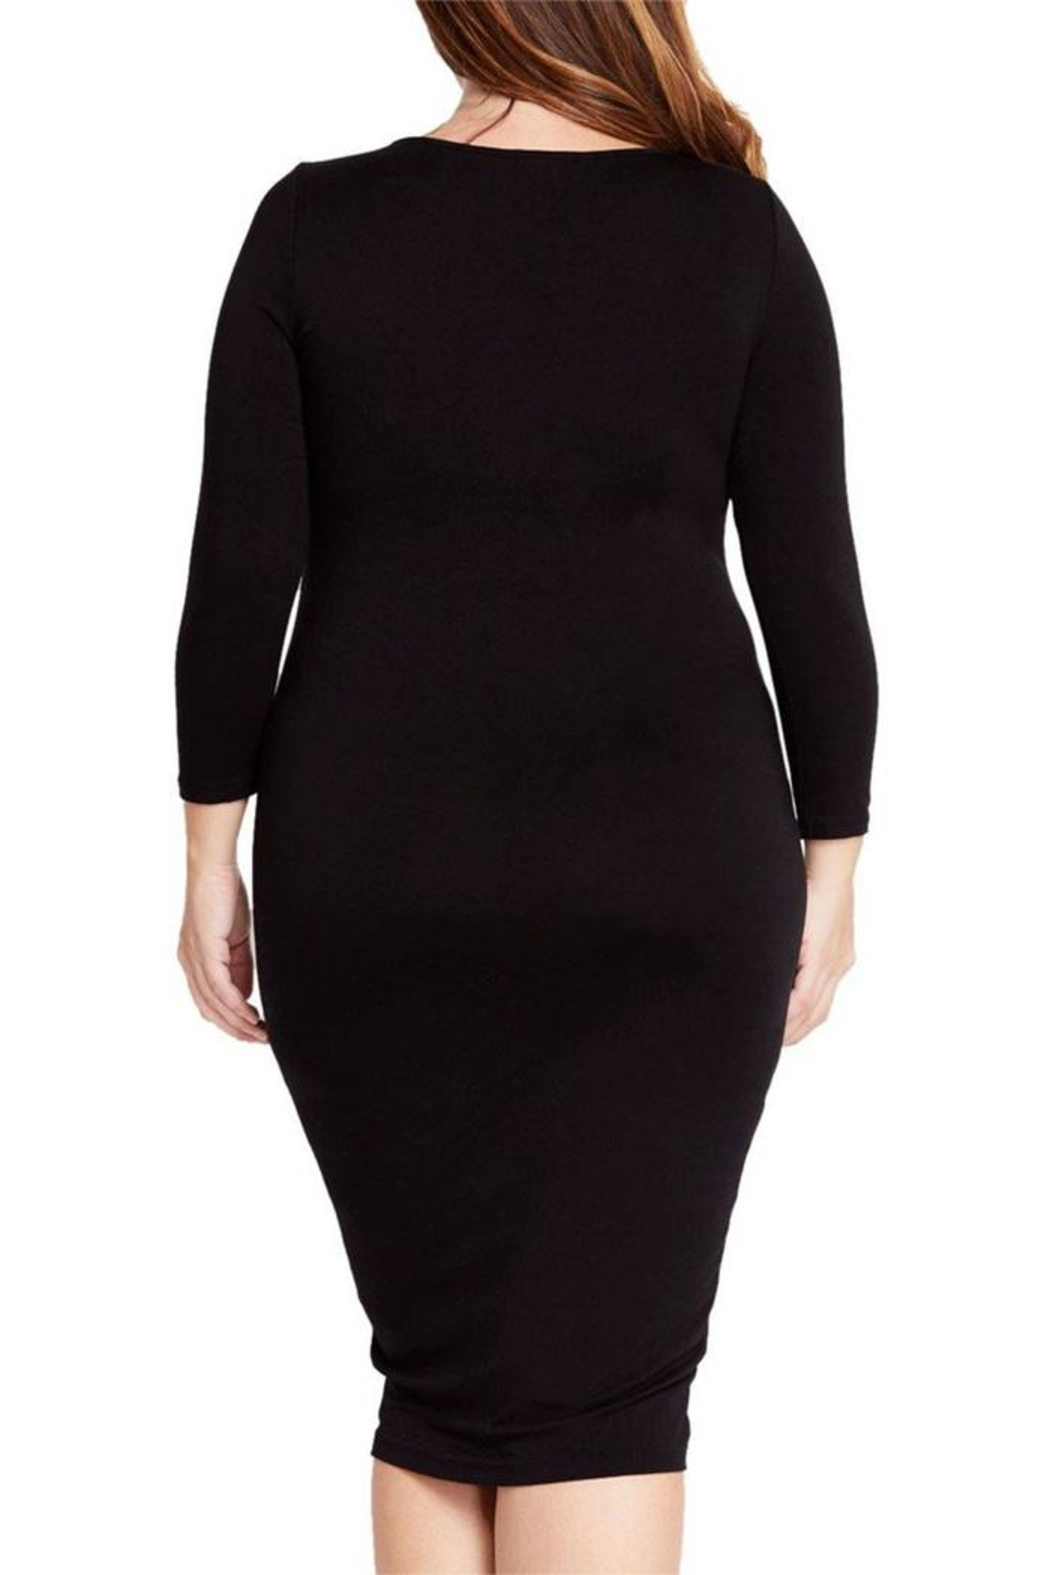 Mai Tai Black Fitted Dress - Side Cropped Image